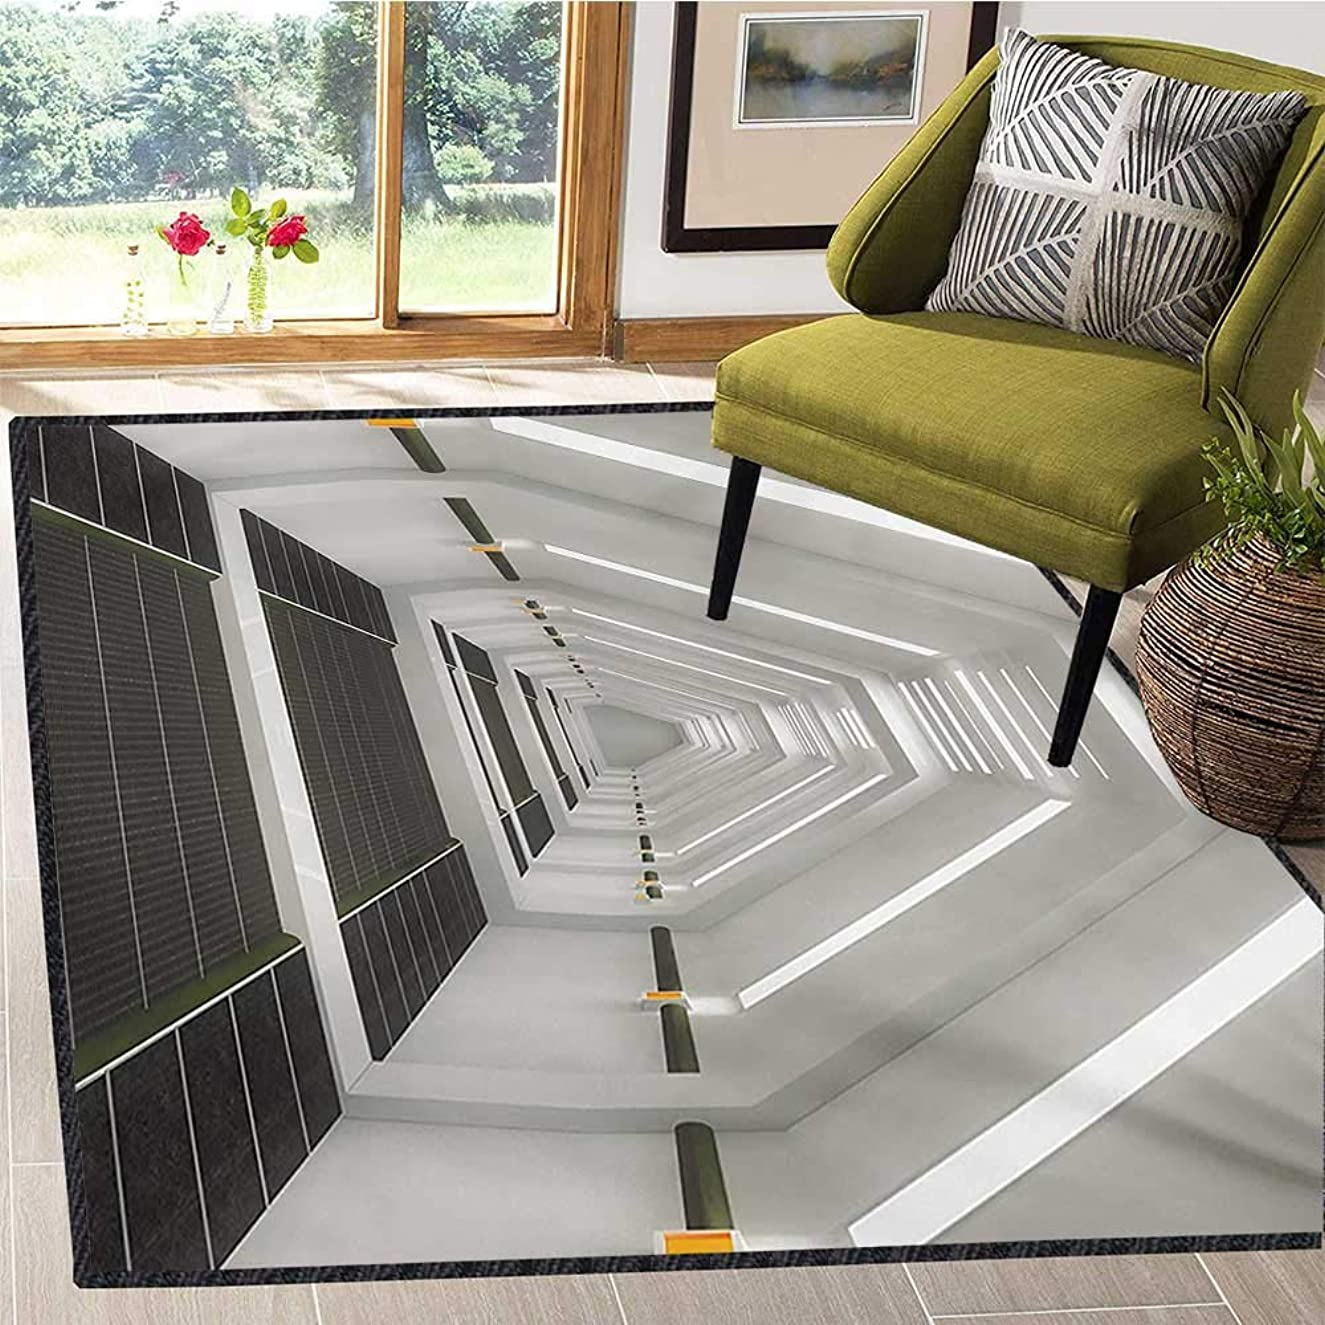 Outer Space, Area Rug for Kids Room, Surreal Scene of Spaceflight New Horizons Theme Science Fiction Photo, Children Kids Nursery Rugs Floor Carpet 4x5 Ft Army Green Pale Grey